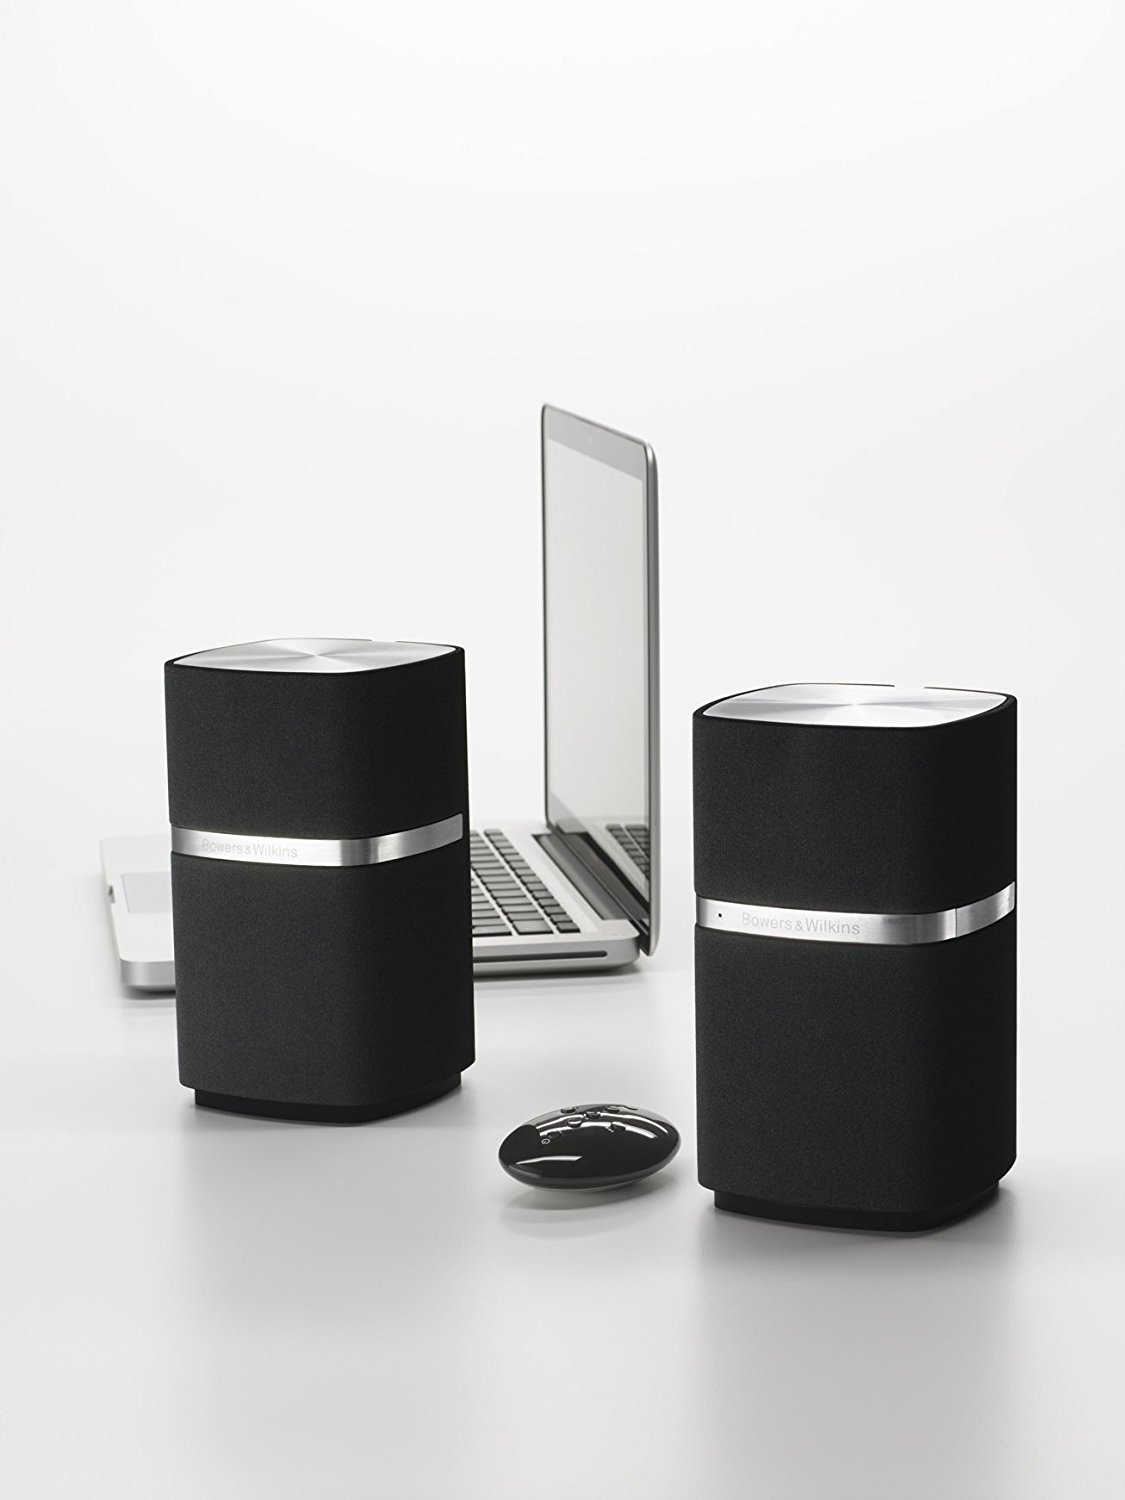 Bowers & Wilkins MM-1 Hi-Fi Computer Speakers, Black